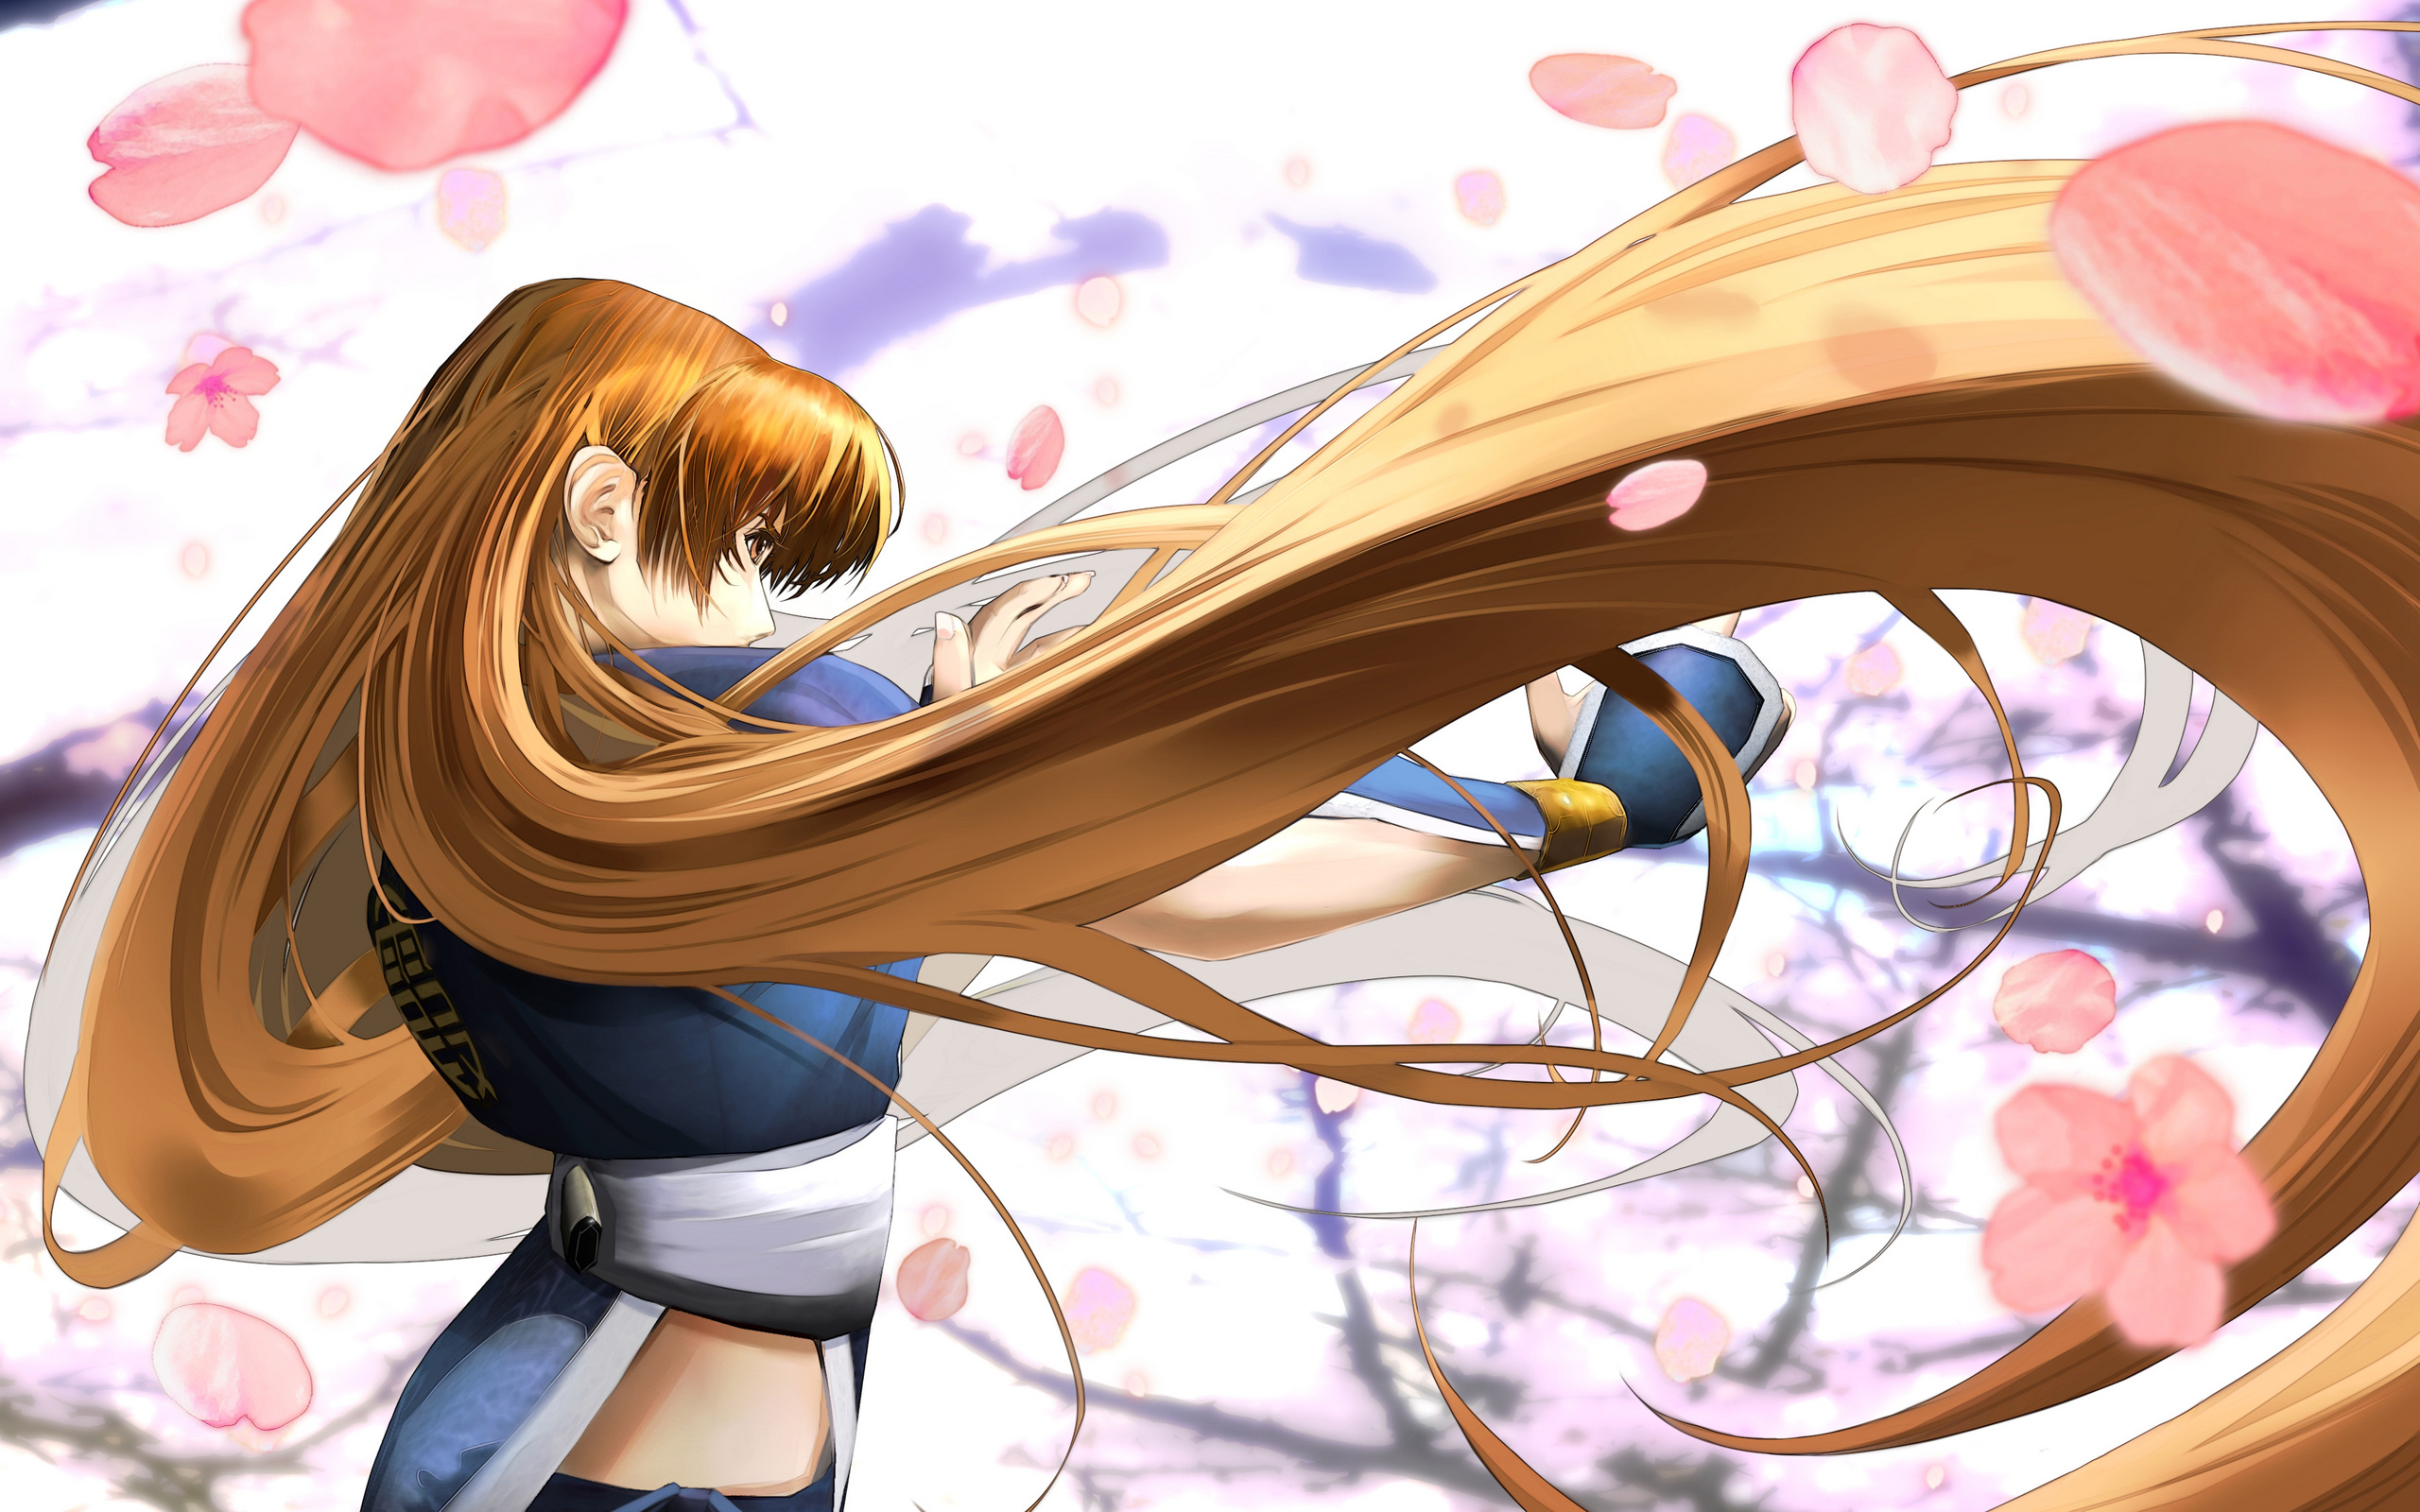 Kasumi   Dead or Alive Dimensions   Wallpaper   Dead or Alive Photo 2560x1600